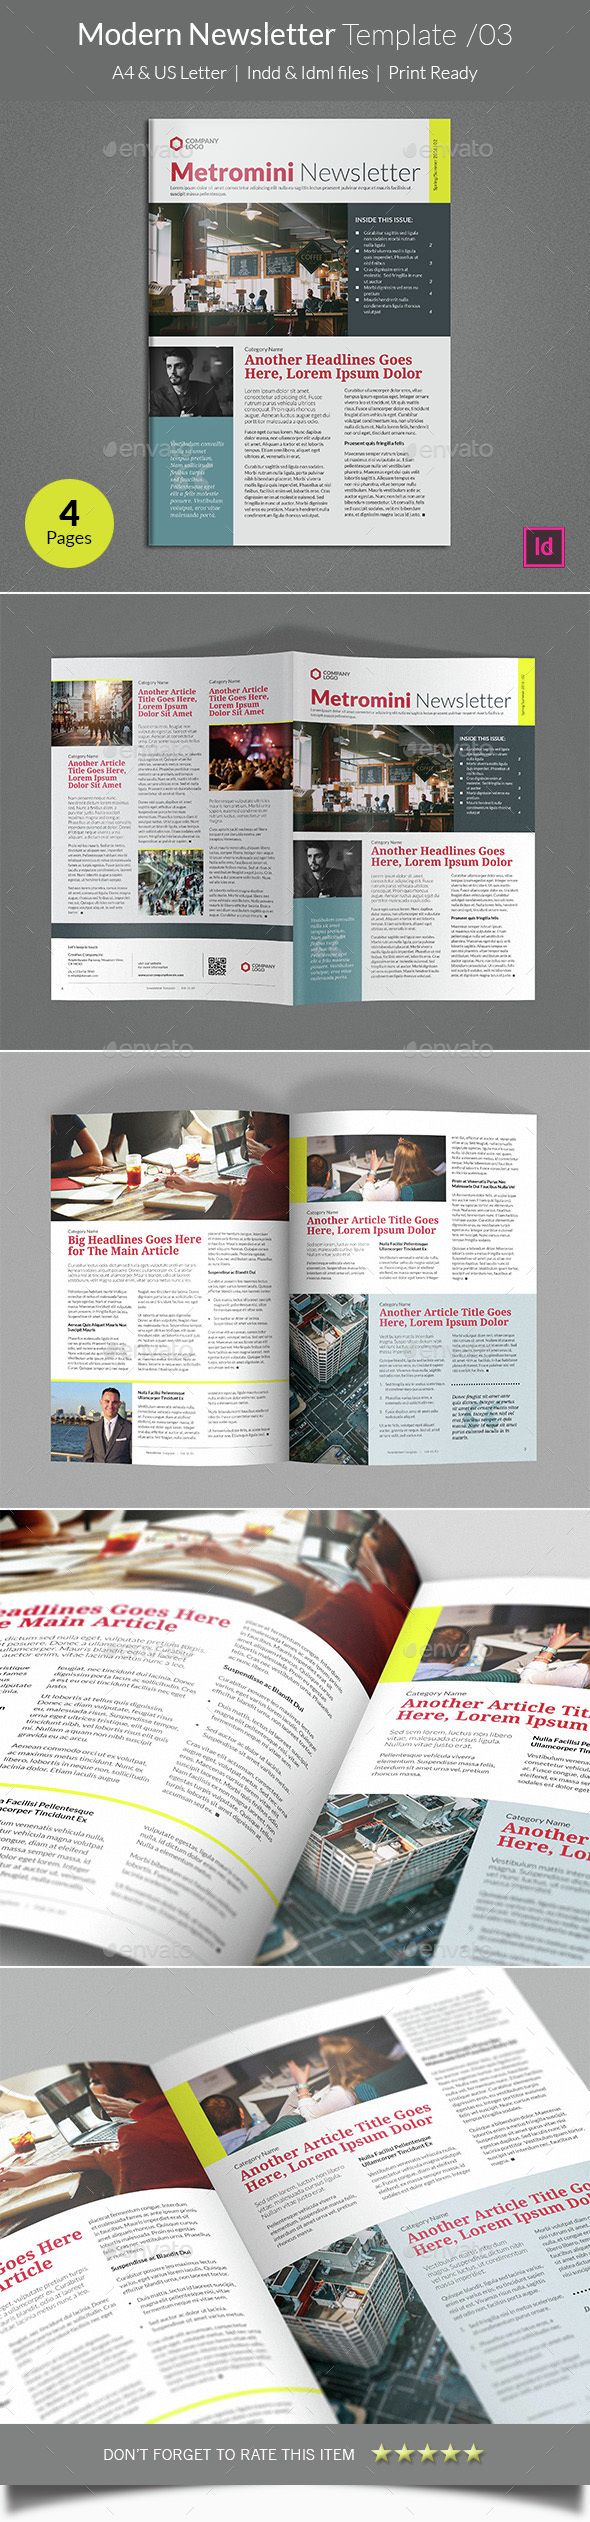 Modern Newsletter Template InDesign INDD. Download here: http ...